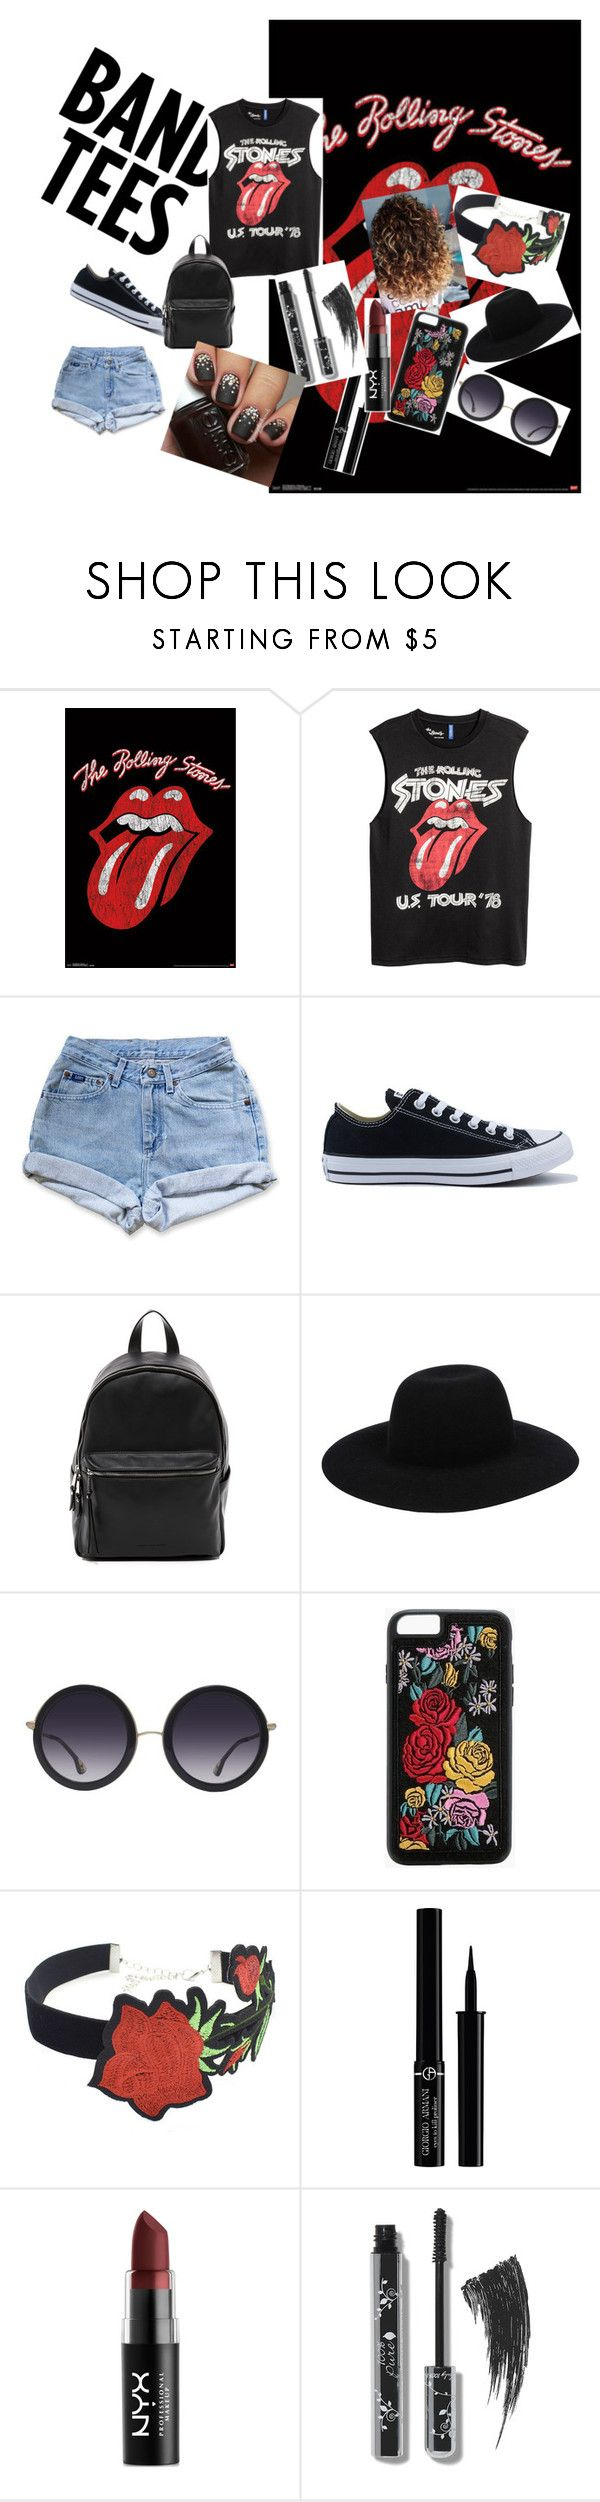 """""""Rolling Stones Band tees"""" by bambi-sinclair on Polyvore featuring Levi's, Converse, French Connection, Off-White, Alice + Olivia, Boohoo, WithChic, Giorgio Armani and NYX"""